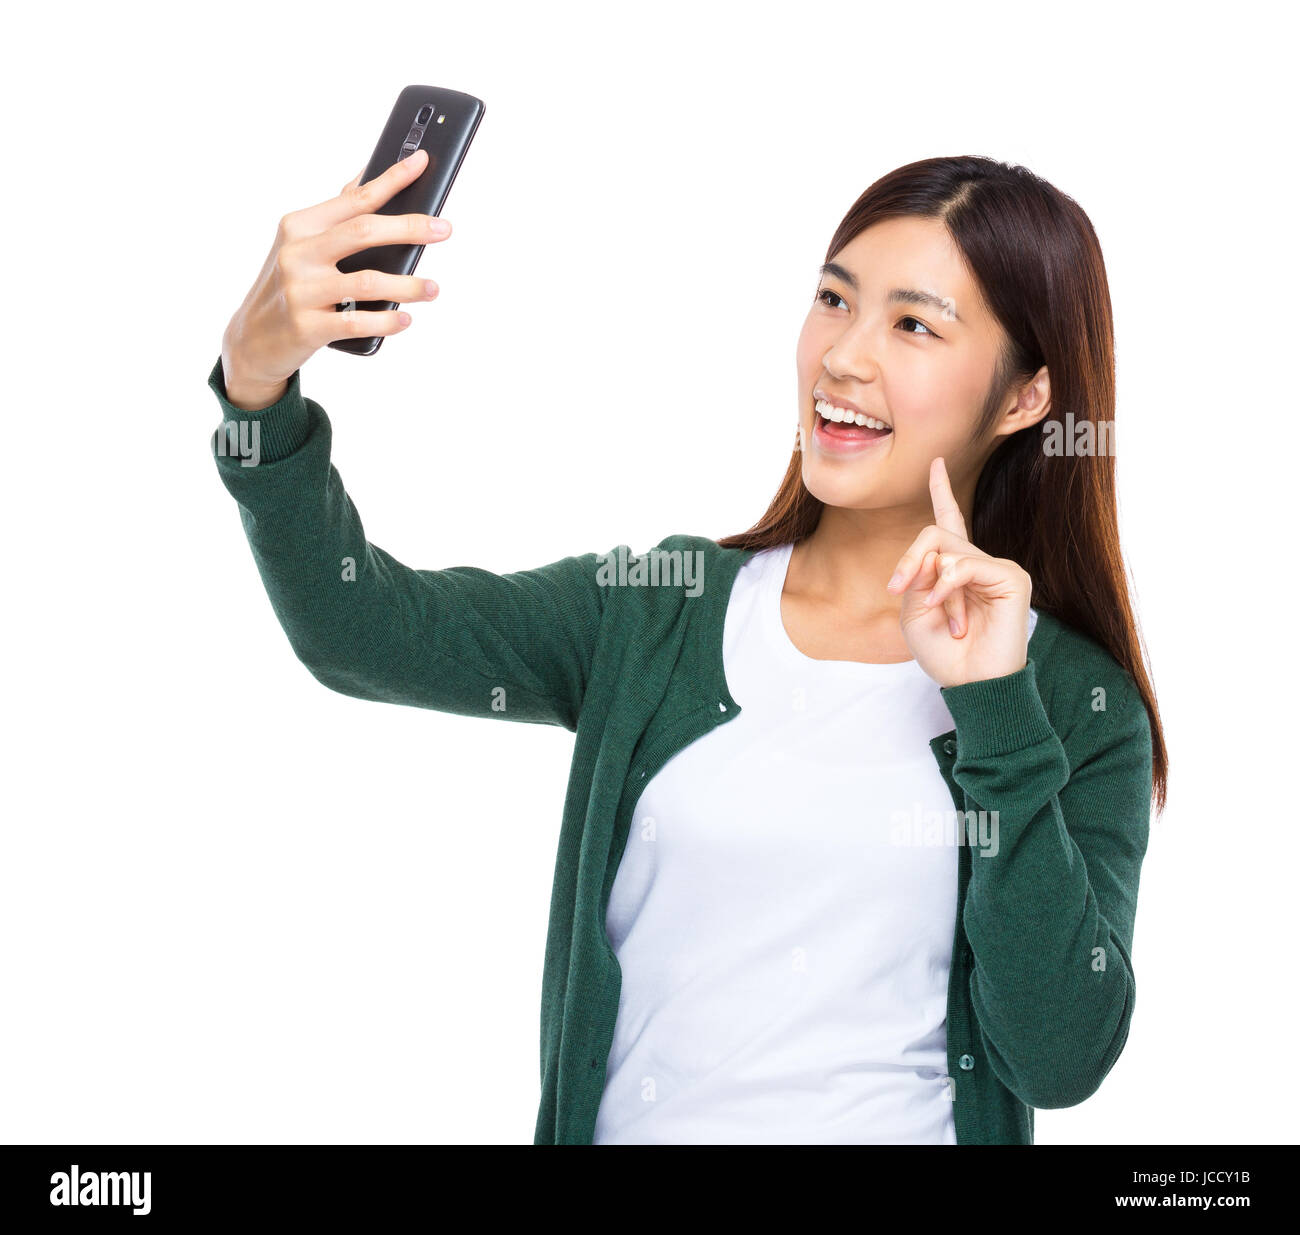 Bbw cell phone selfie commit